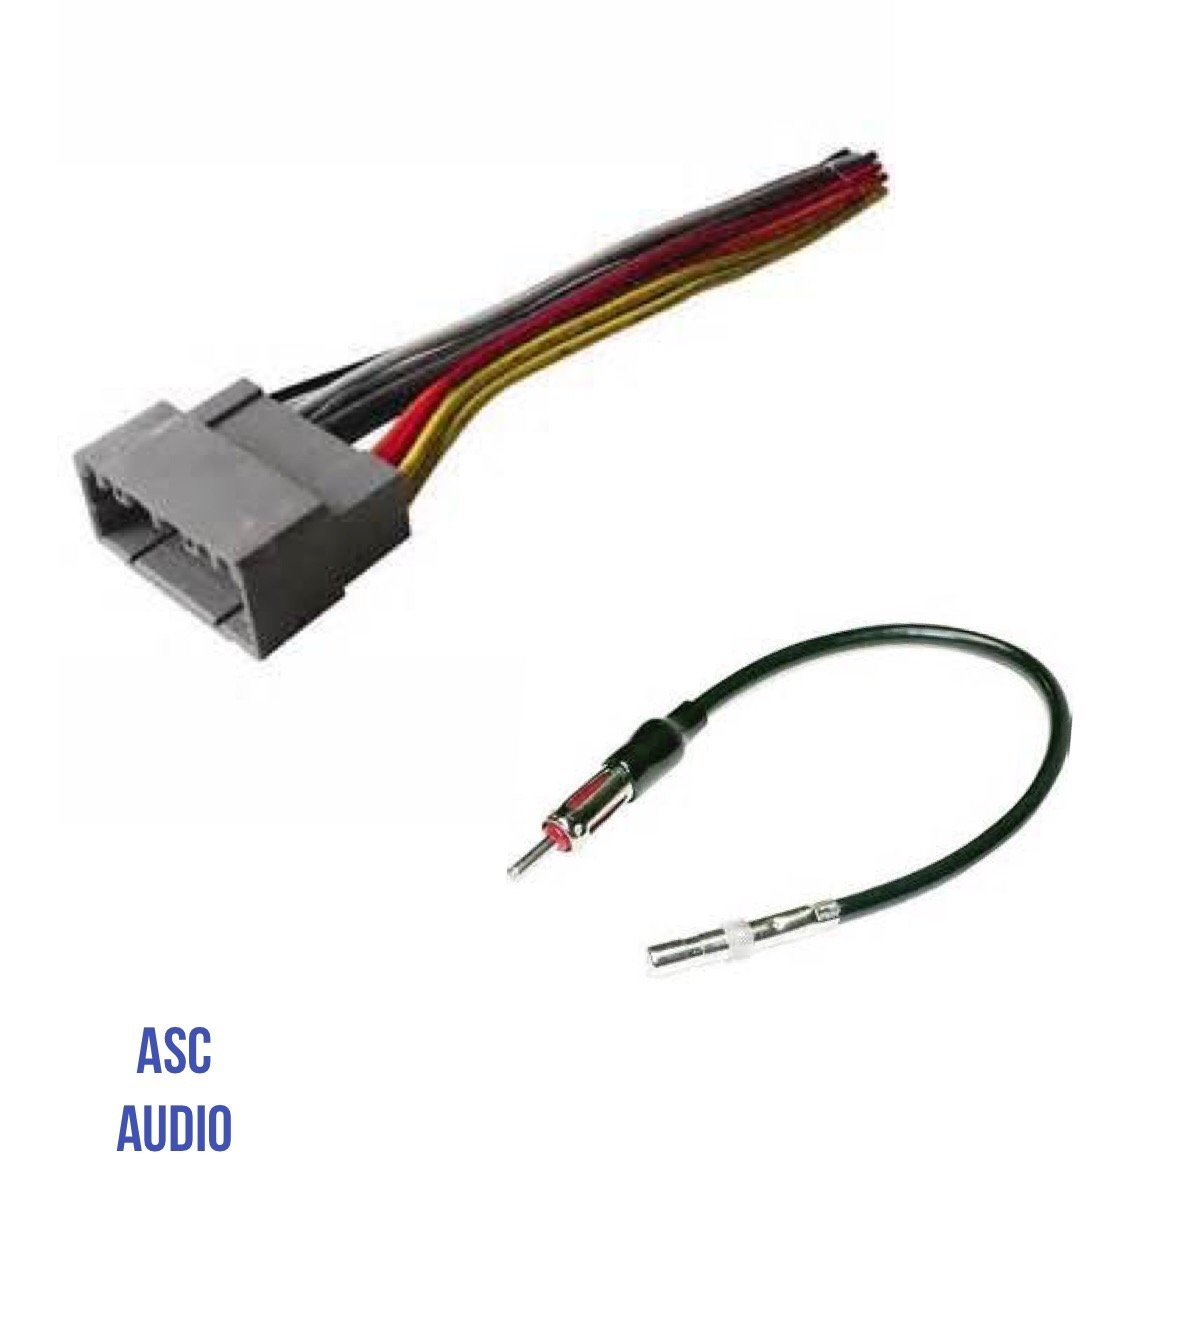 ASC Audio Car Stereo Wire Harness and Antenna Adapter to install an Aftermarket Radio for select Dodge Chrysler Jeep - Compatible Vehicles listed below